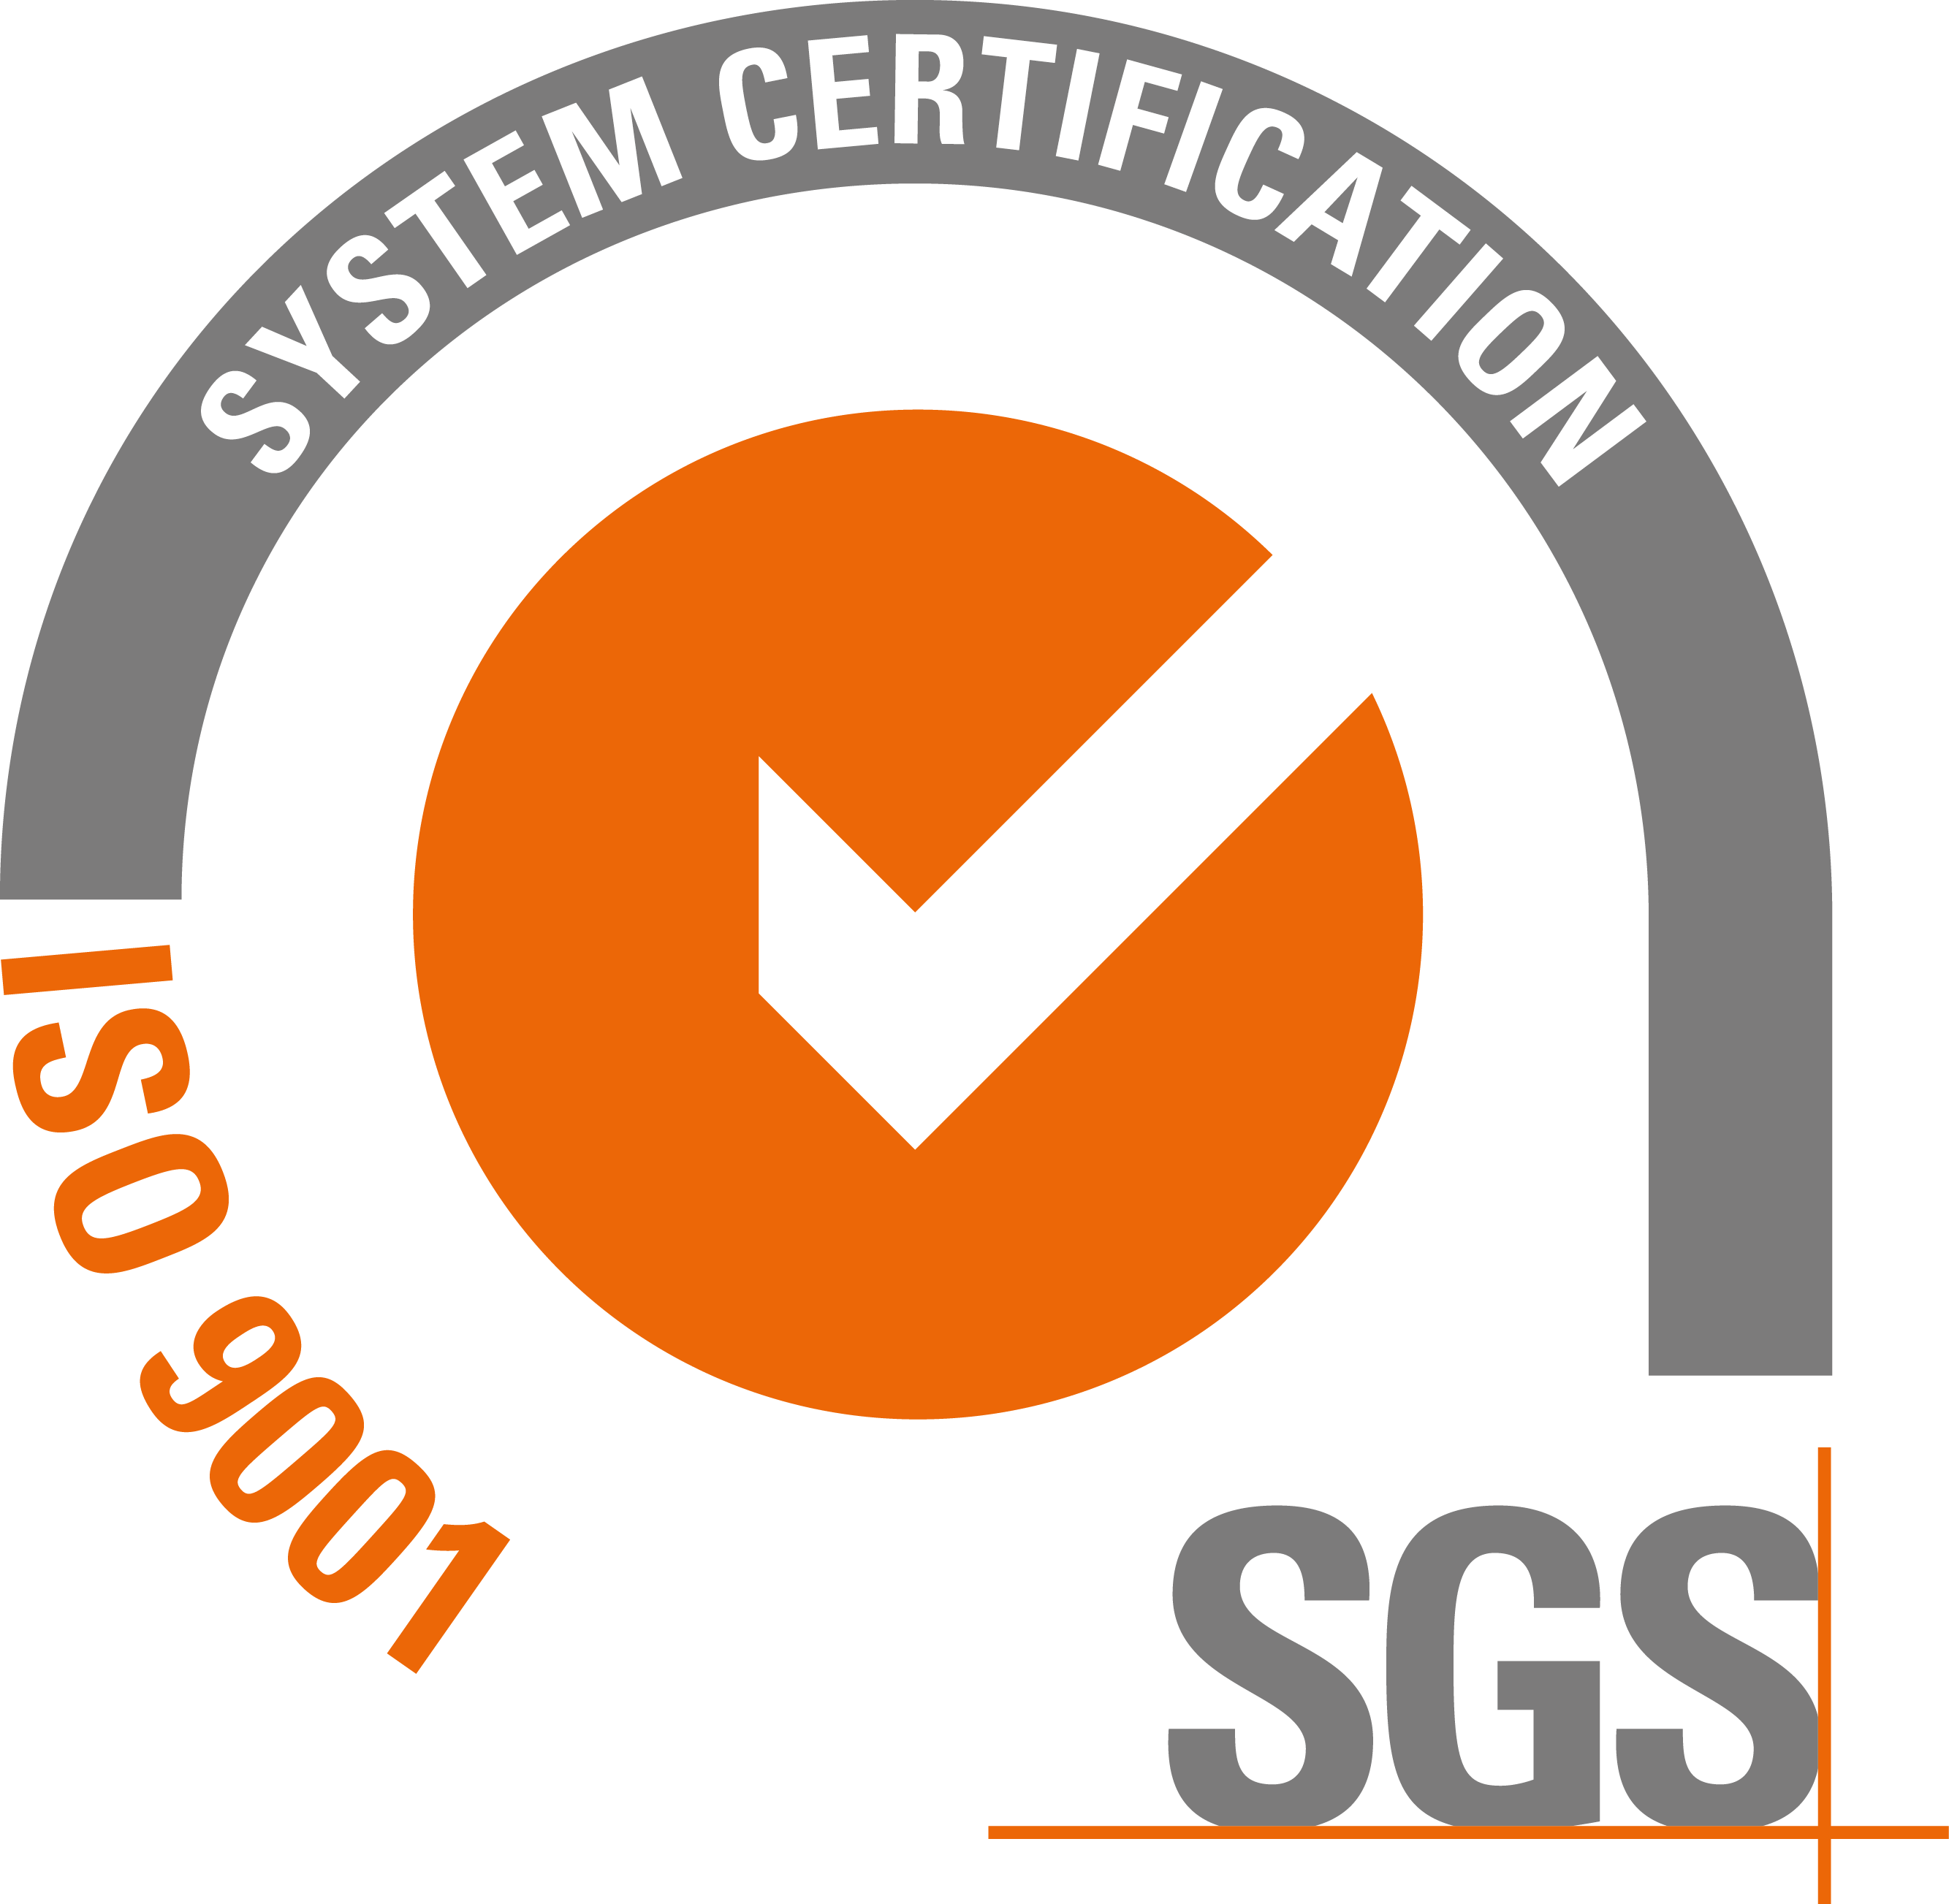 icon-iso9001.png